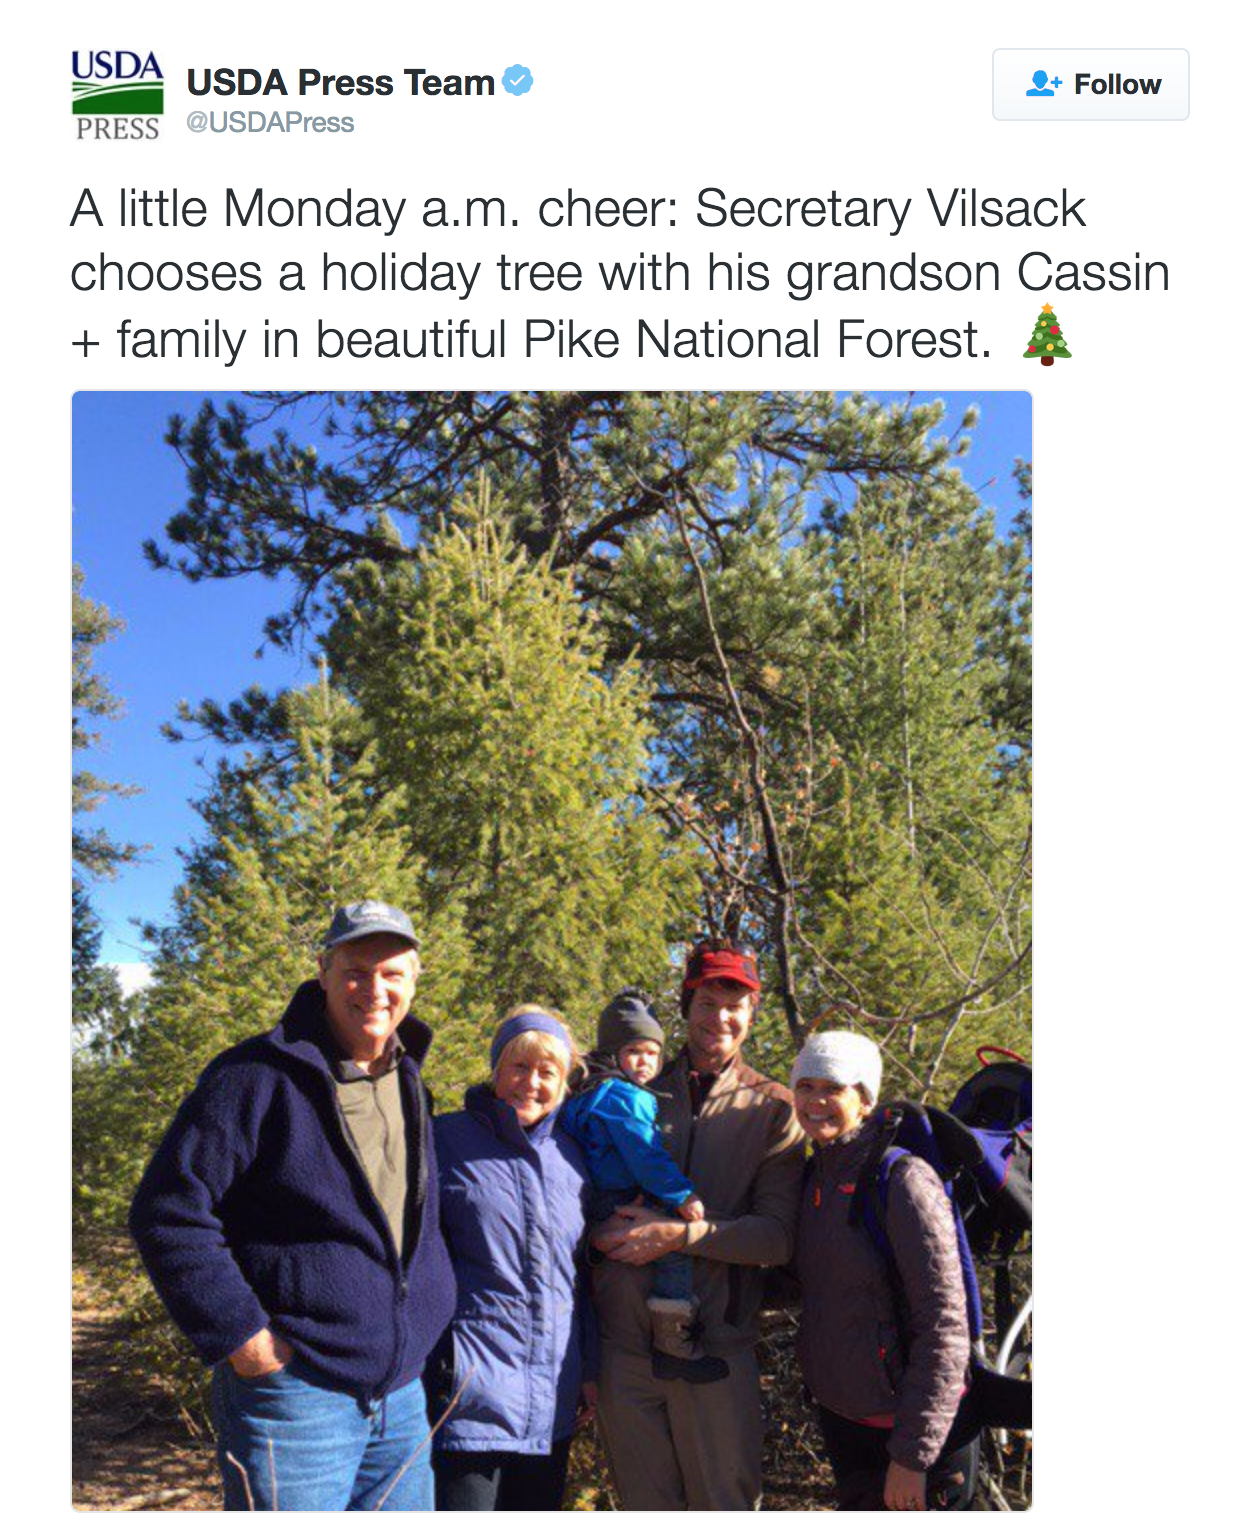 A little Monday a.m. cheer: Secretary Vilsack chooses a holiday tree with his grandson Cassin + family in beautiful Pike National Forest. 🎄